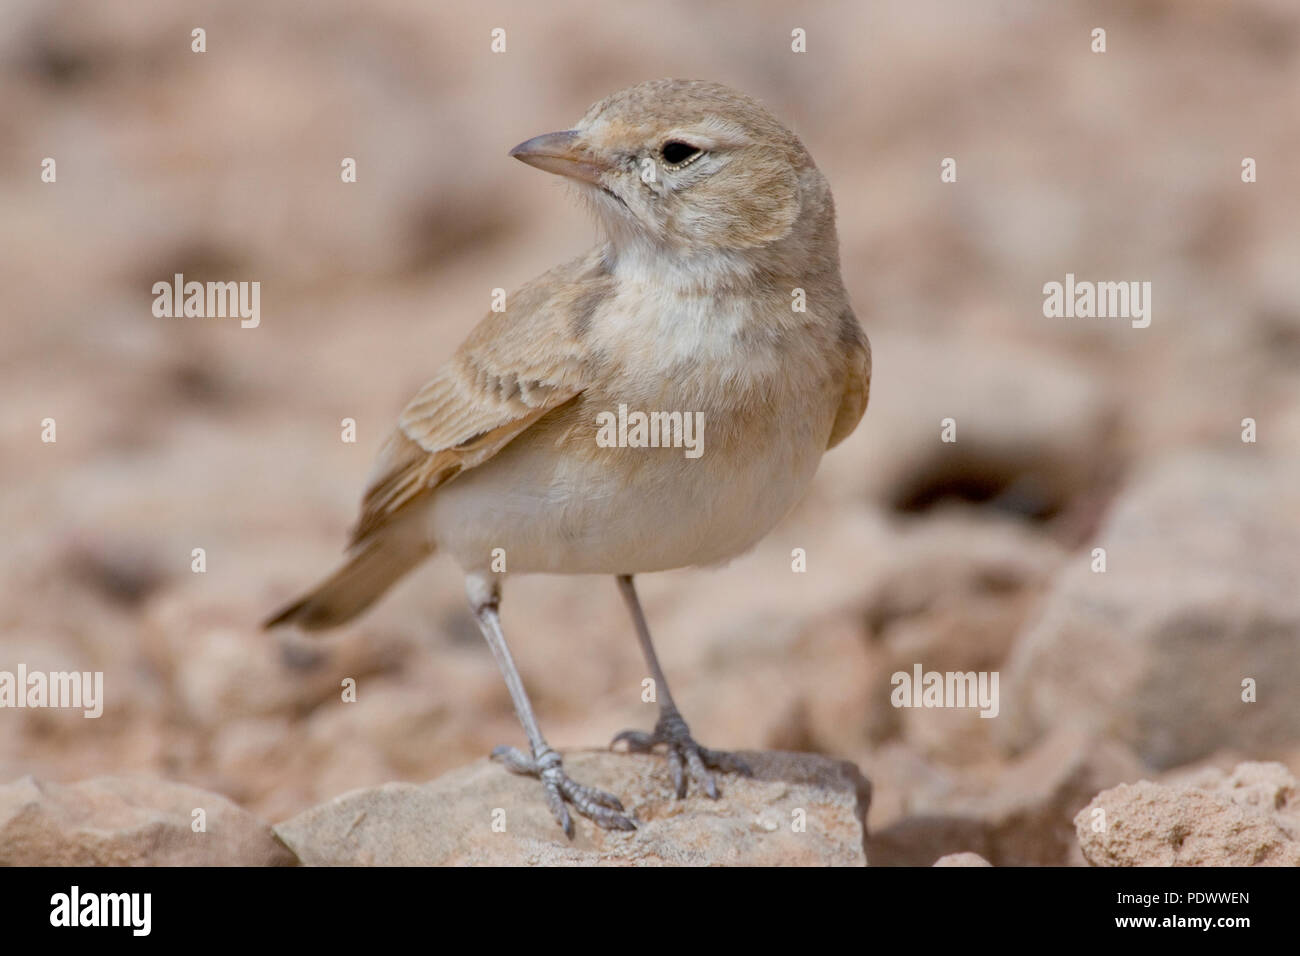 Bar-tailed Desert Lark on a stone, front-view. - Stock Image